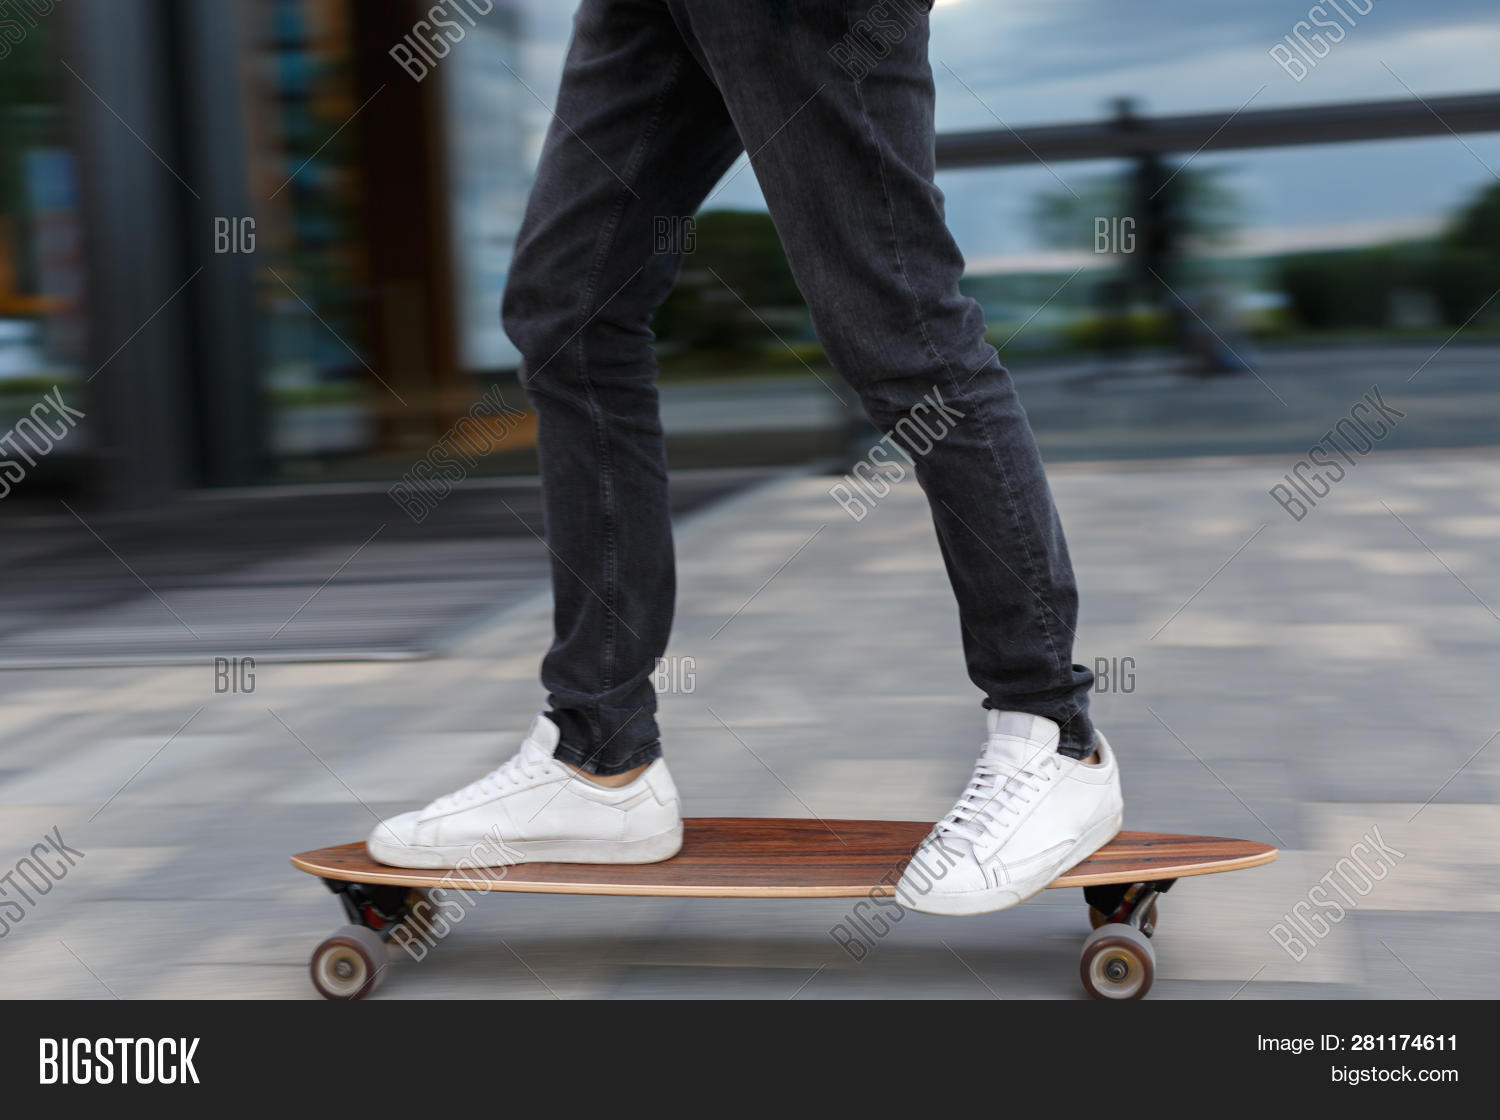 Cropped shot of young man in black jeans and white sneakers riding on longboard to the left in urban area hurry on a date photo in motion side view